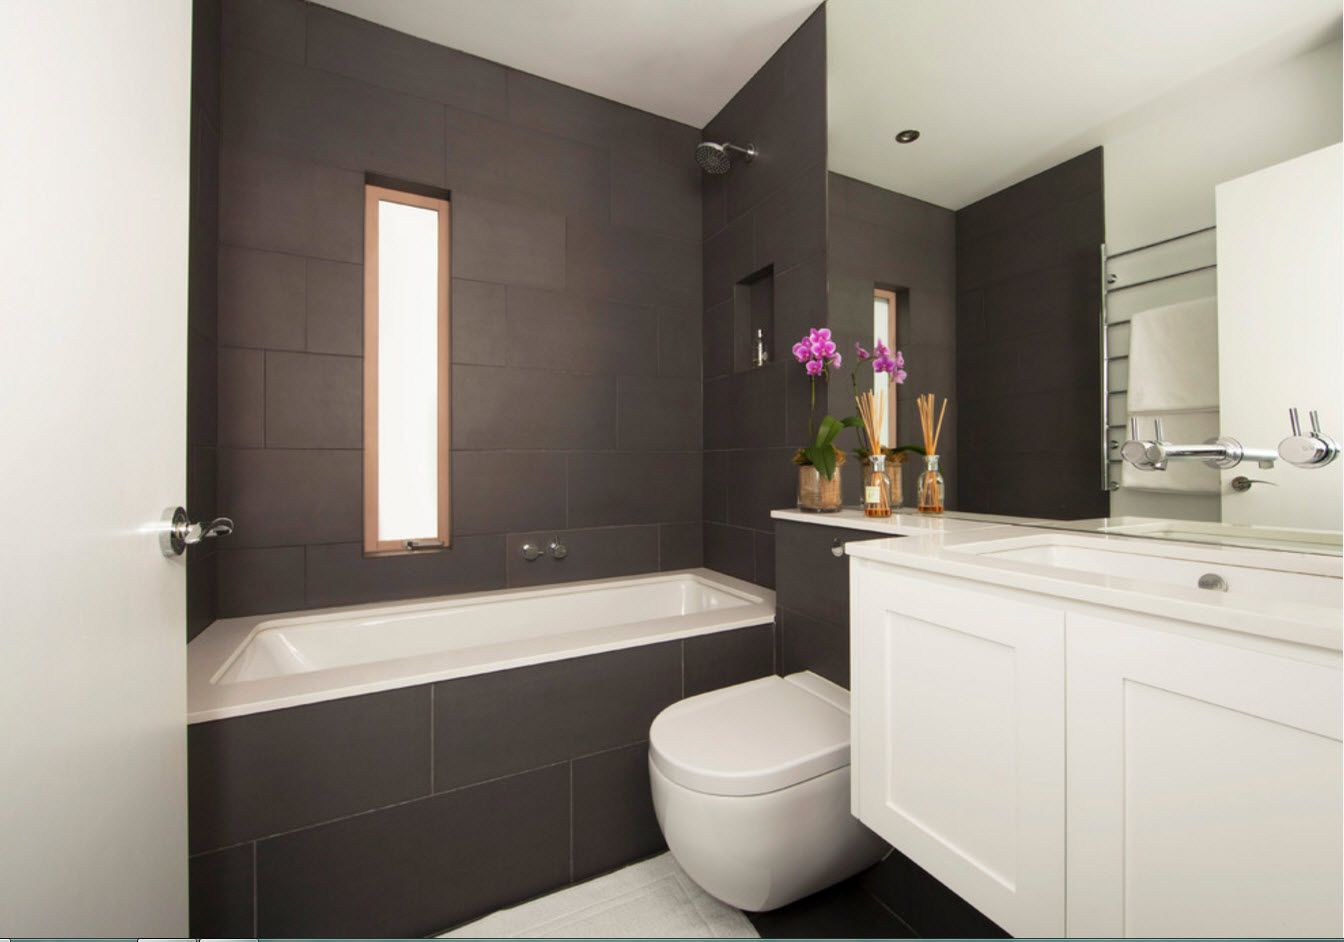 Solid design of the bathroom with graphite walls